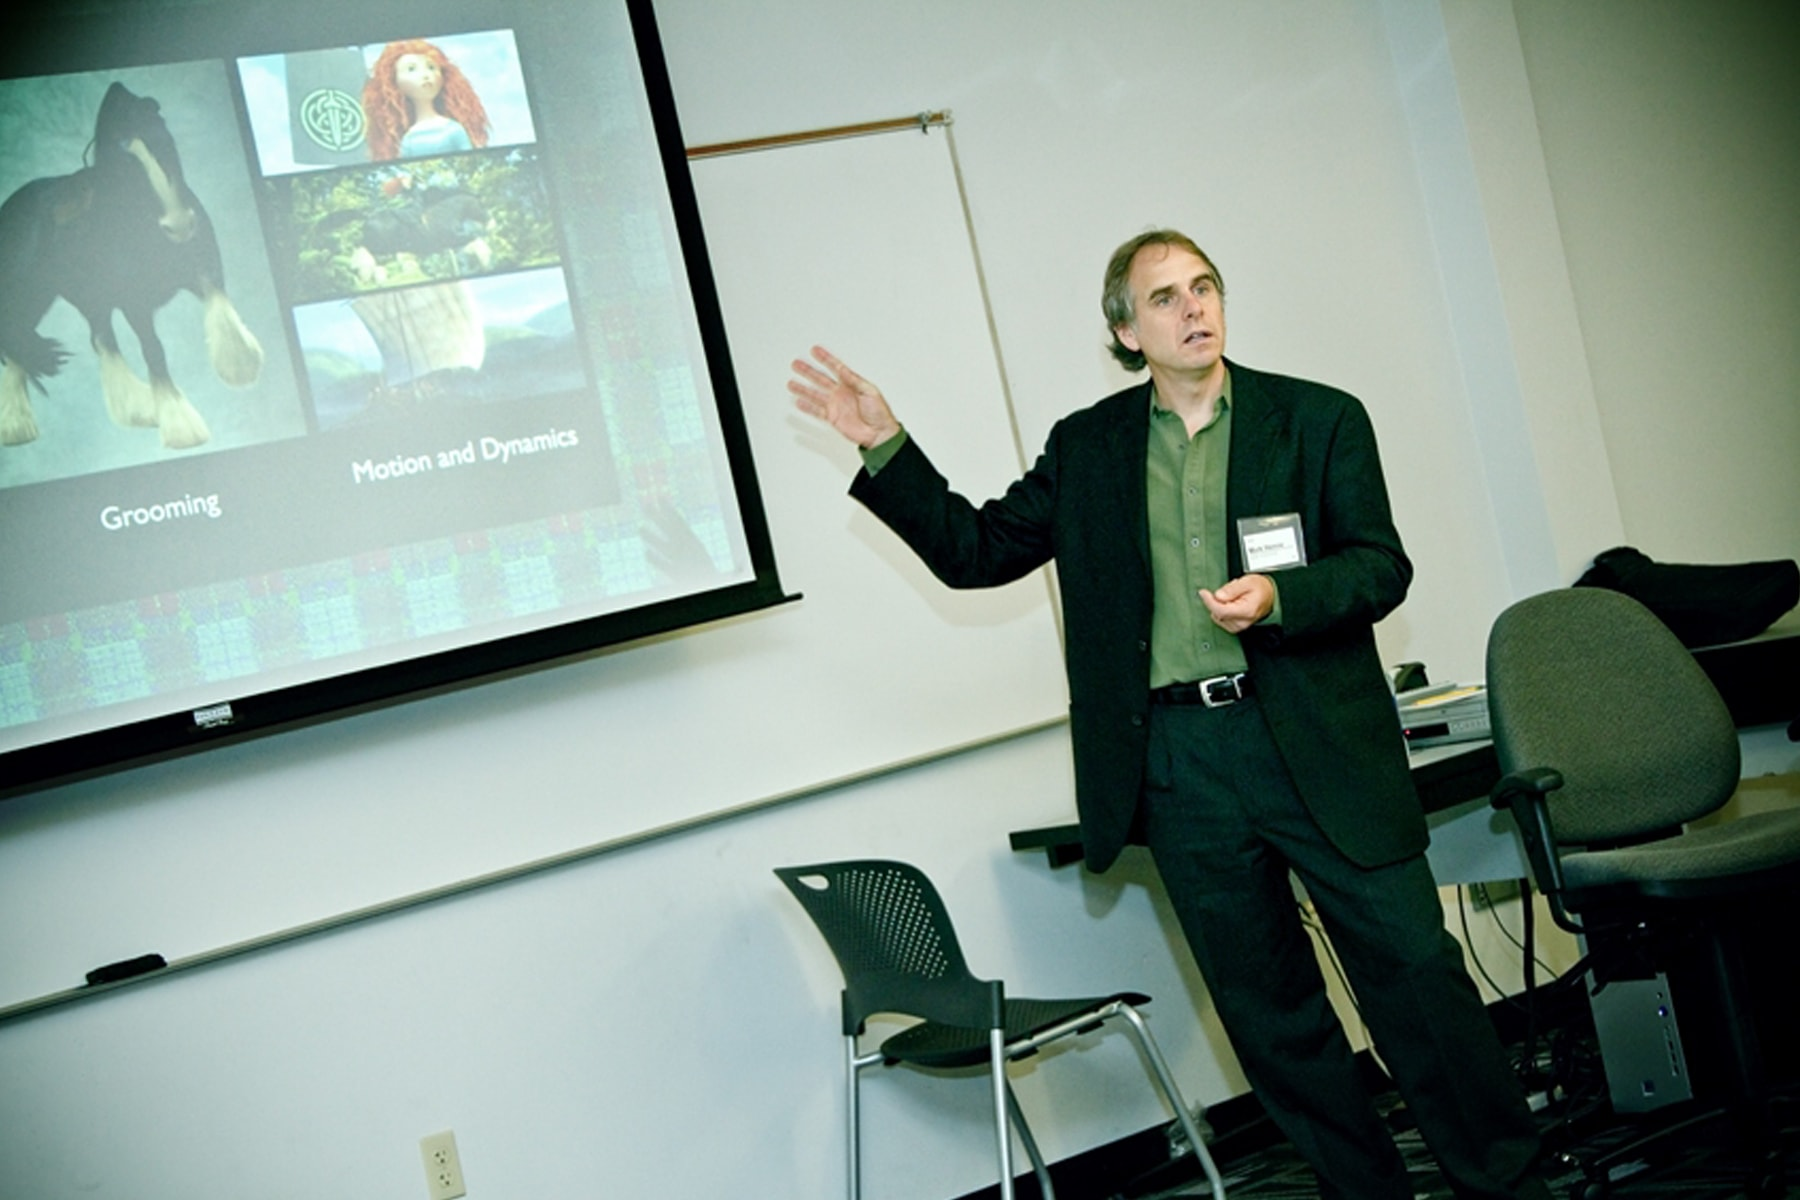 Mark Henne gestures toward a screen showing animated characters Princess Merida and her horse